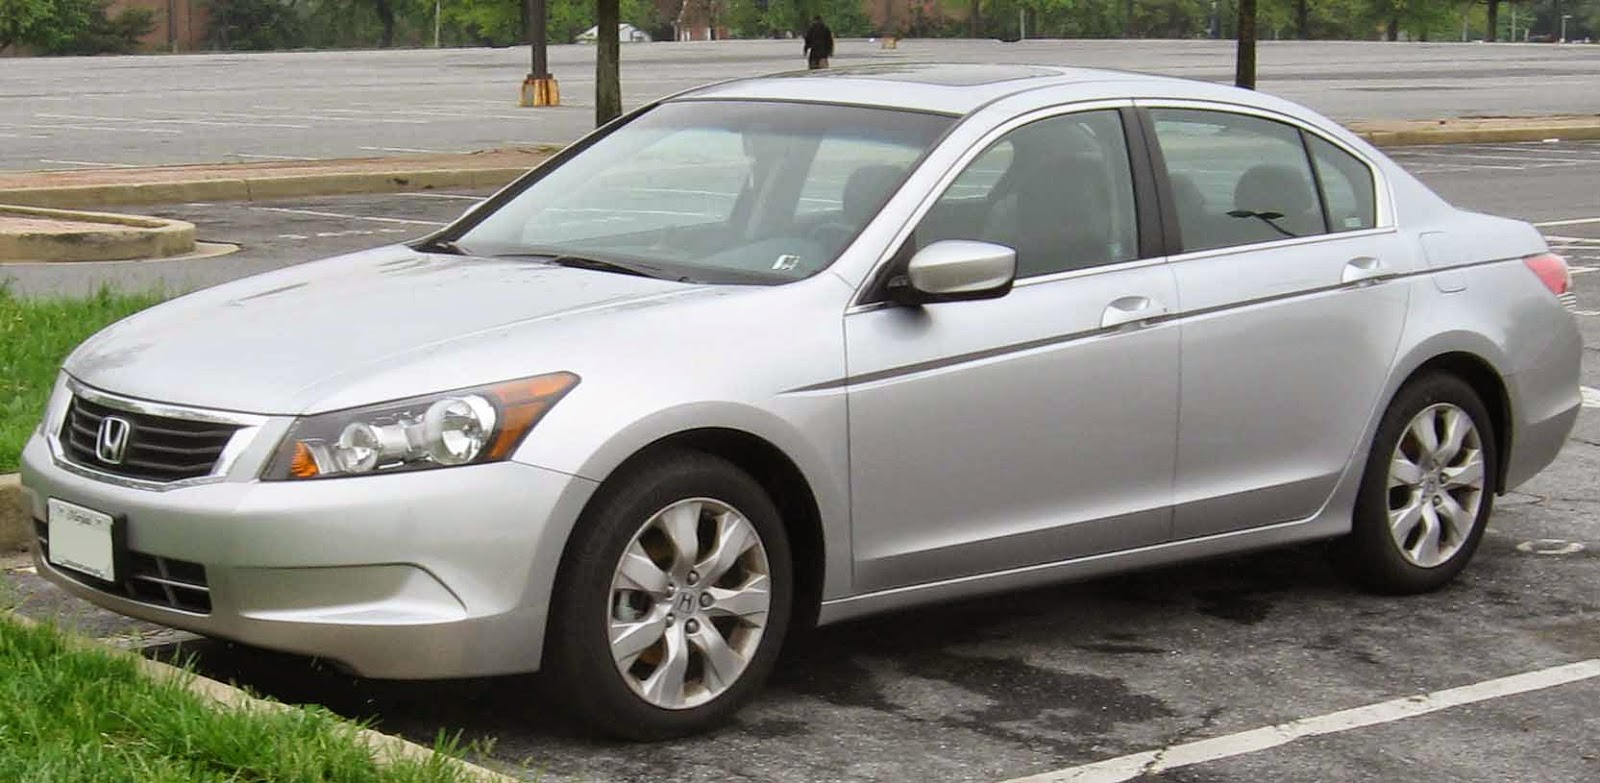 2008 Honda Accord (USA-Canada)